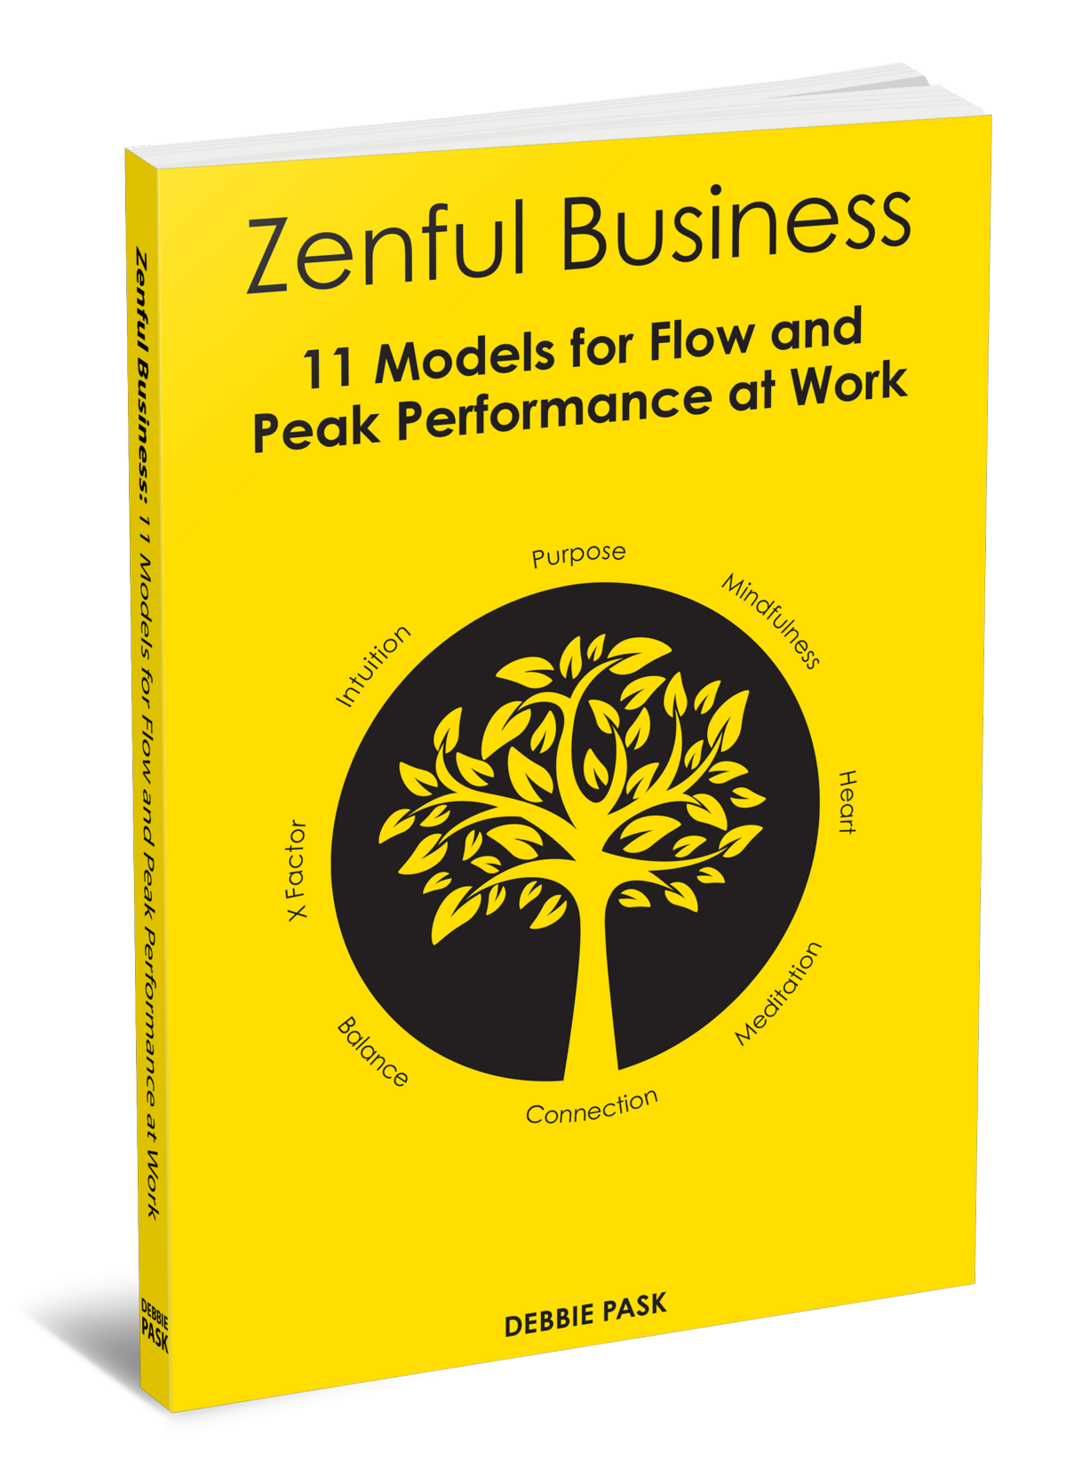 zenful-business-models-flow-peak-performance-work-book